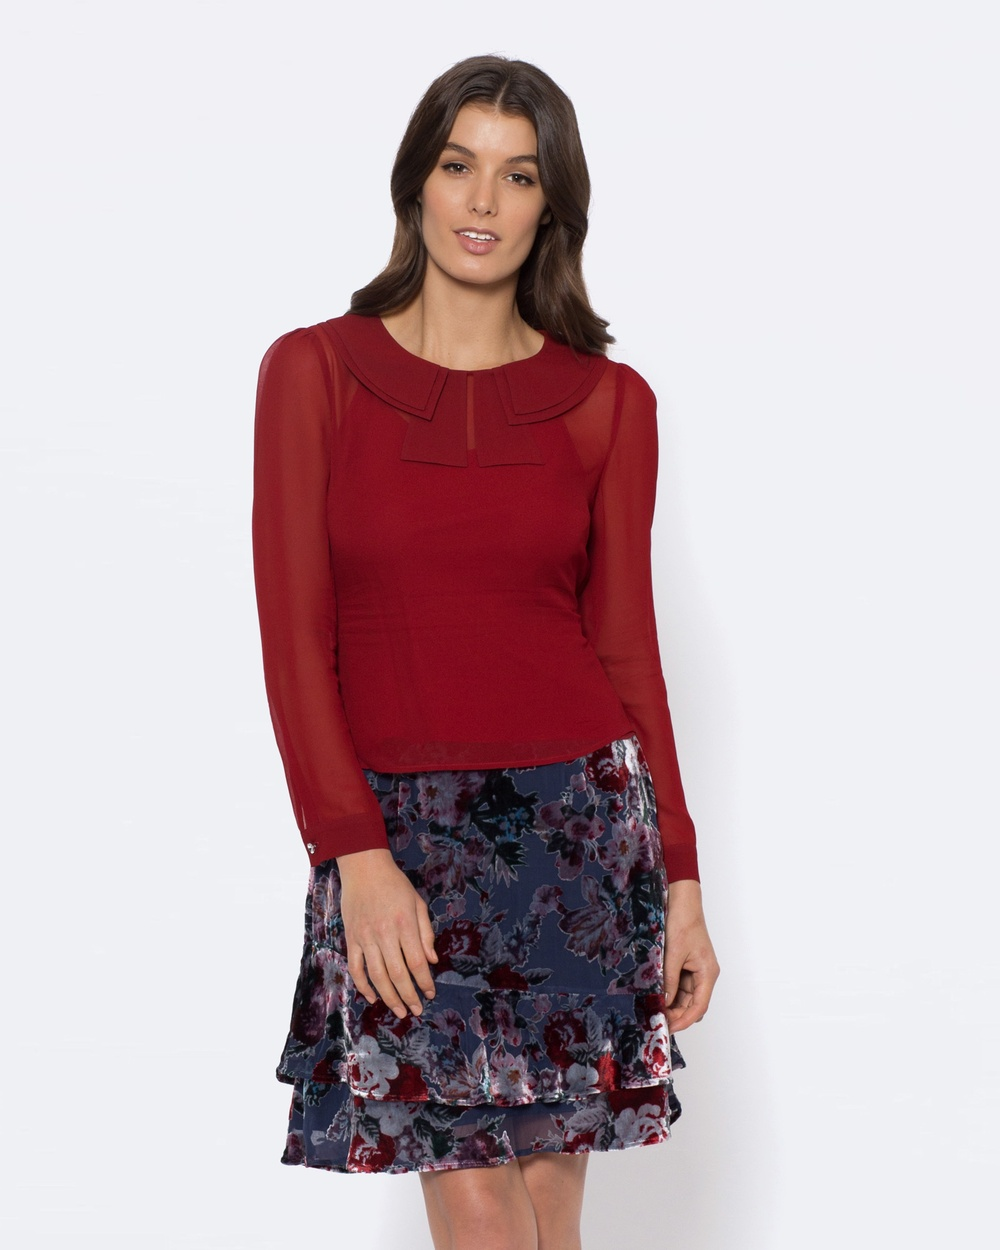 Alannah Hill Afterglow Top Tops Red Afterglow Top